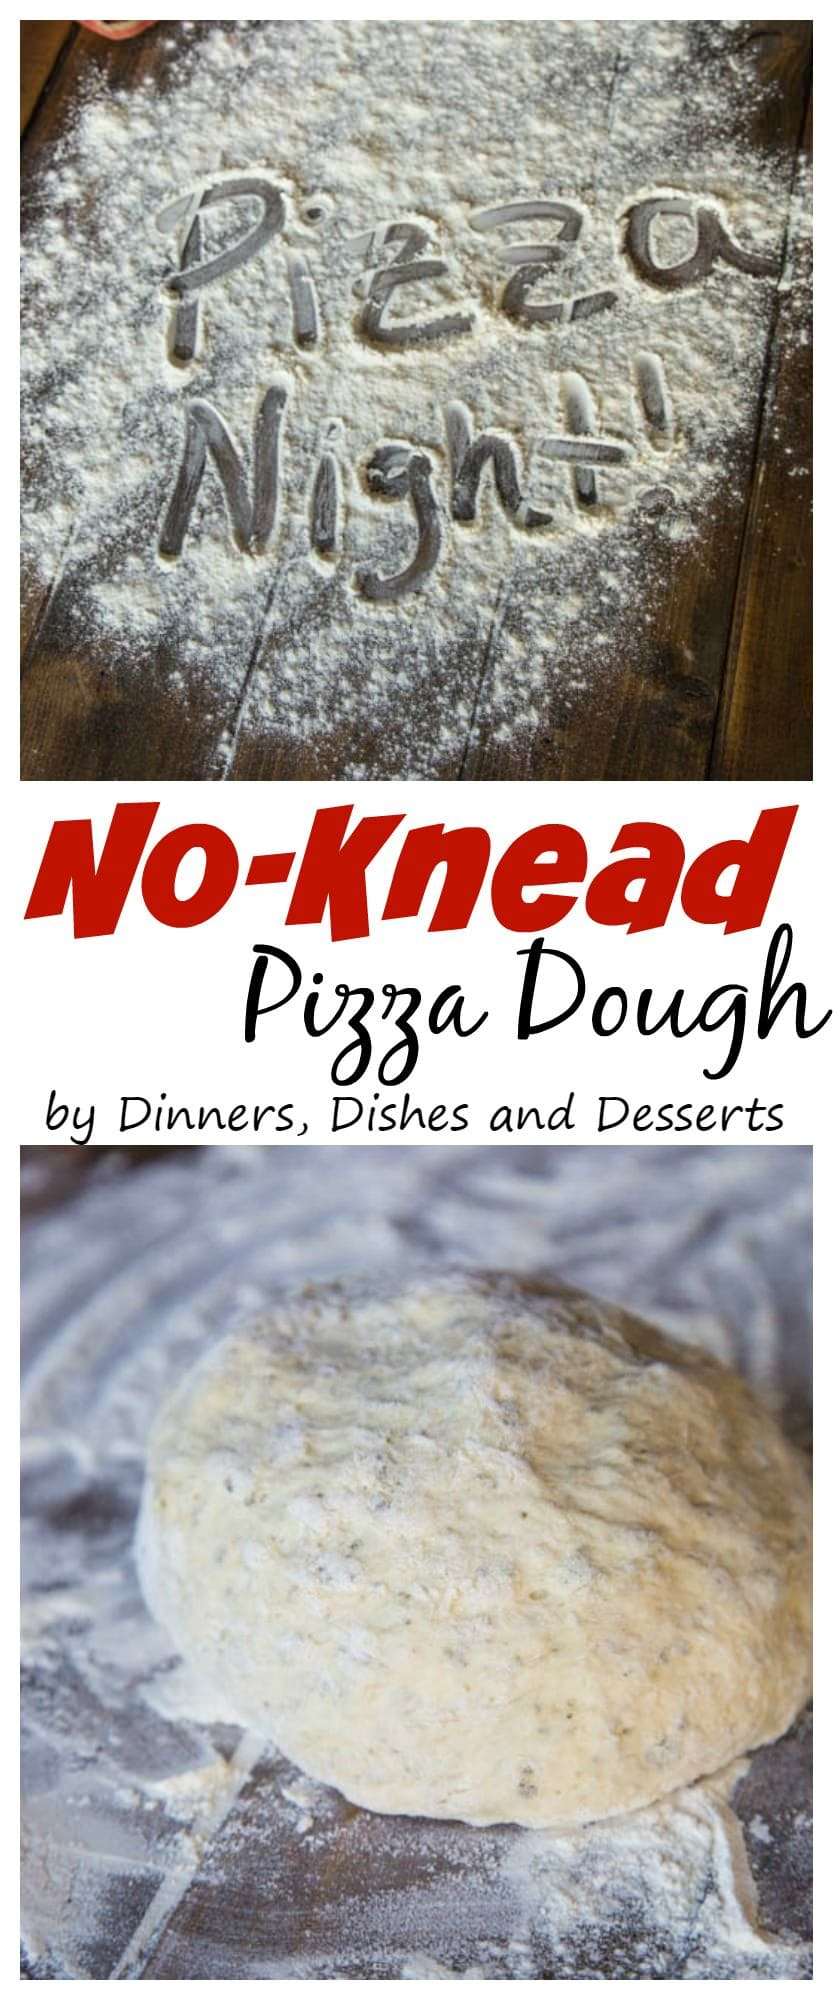 No Knead Pizza Dough - Make homemade pizza at home with this super easy no knead pizza dough!